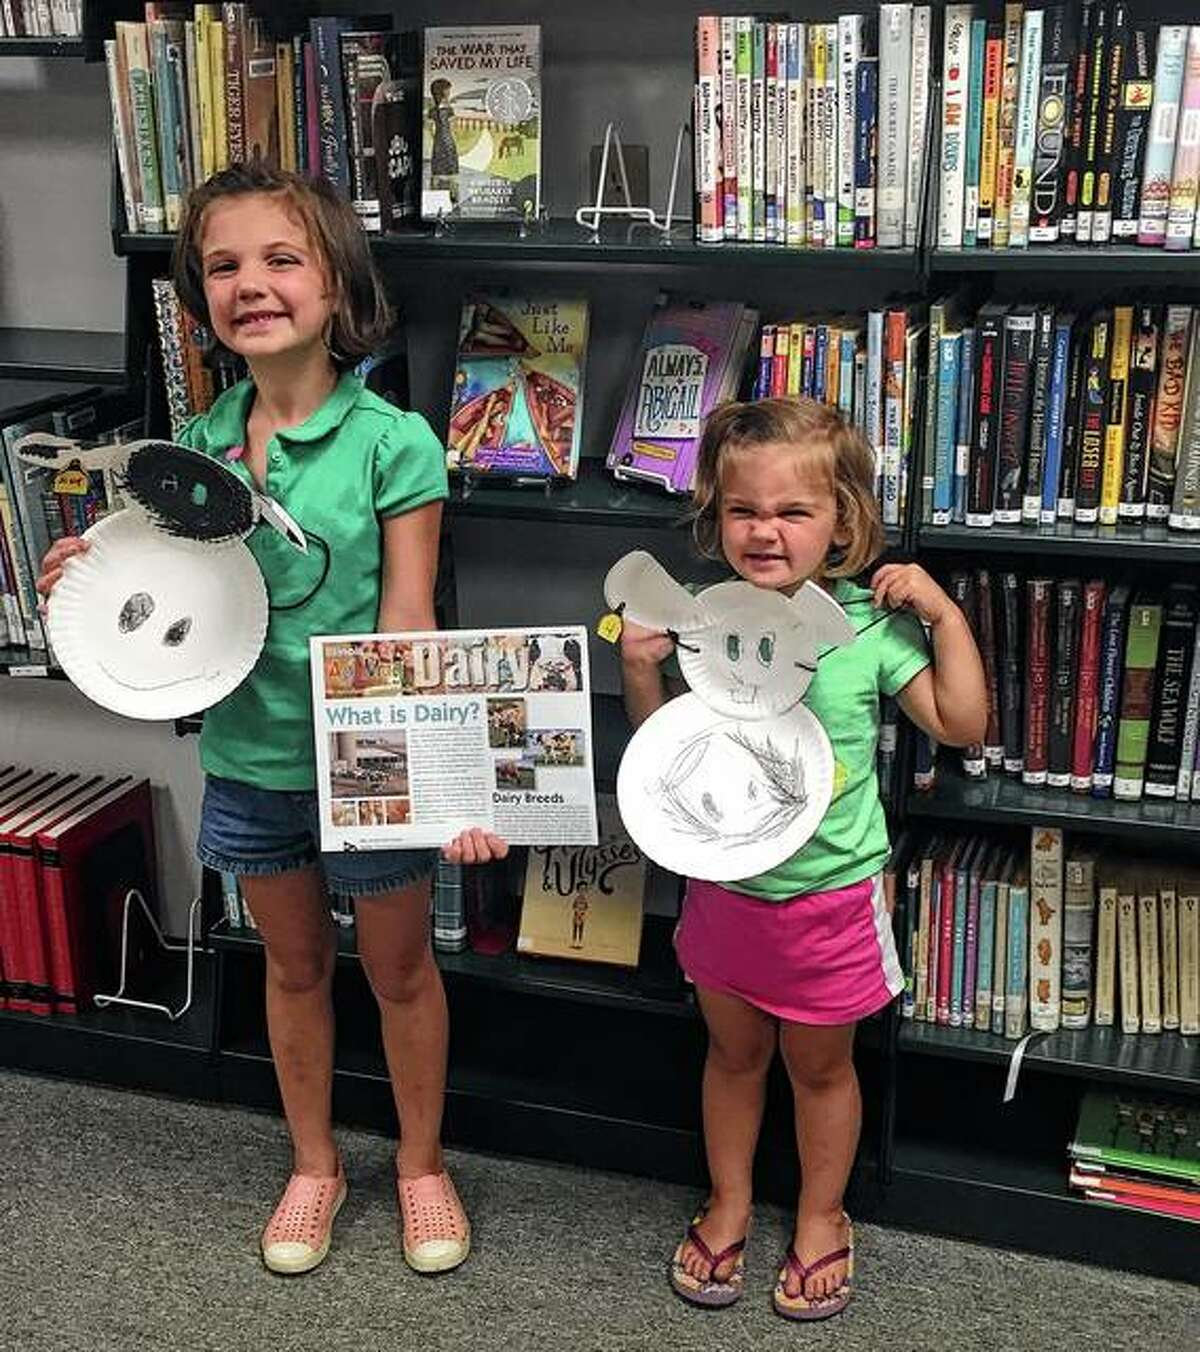 """Sisters Clara and Eleanore Nation show off their completed """"moo masks,"""" soybean crayons and beef/dairy agricultural magazines during a recent visit to Barry Public Library. The sisters, along with Jack Nation, explored agricultural education during a program led by Pike-Scott Farm Bureau's Agriculture in the Classroom program on behalf of the Two Rivers Farm Bureau Foundation. Along with making the mask and receiving a package of crayons made from soy, participants joined in as several ag-themed books were read during story time. The program, part of the library's summer reading program, runs from 5 to 6 p.m. Mondays until November."""